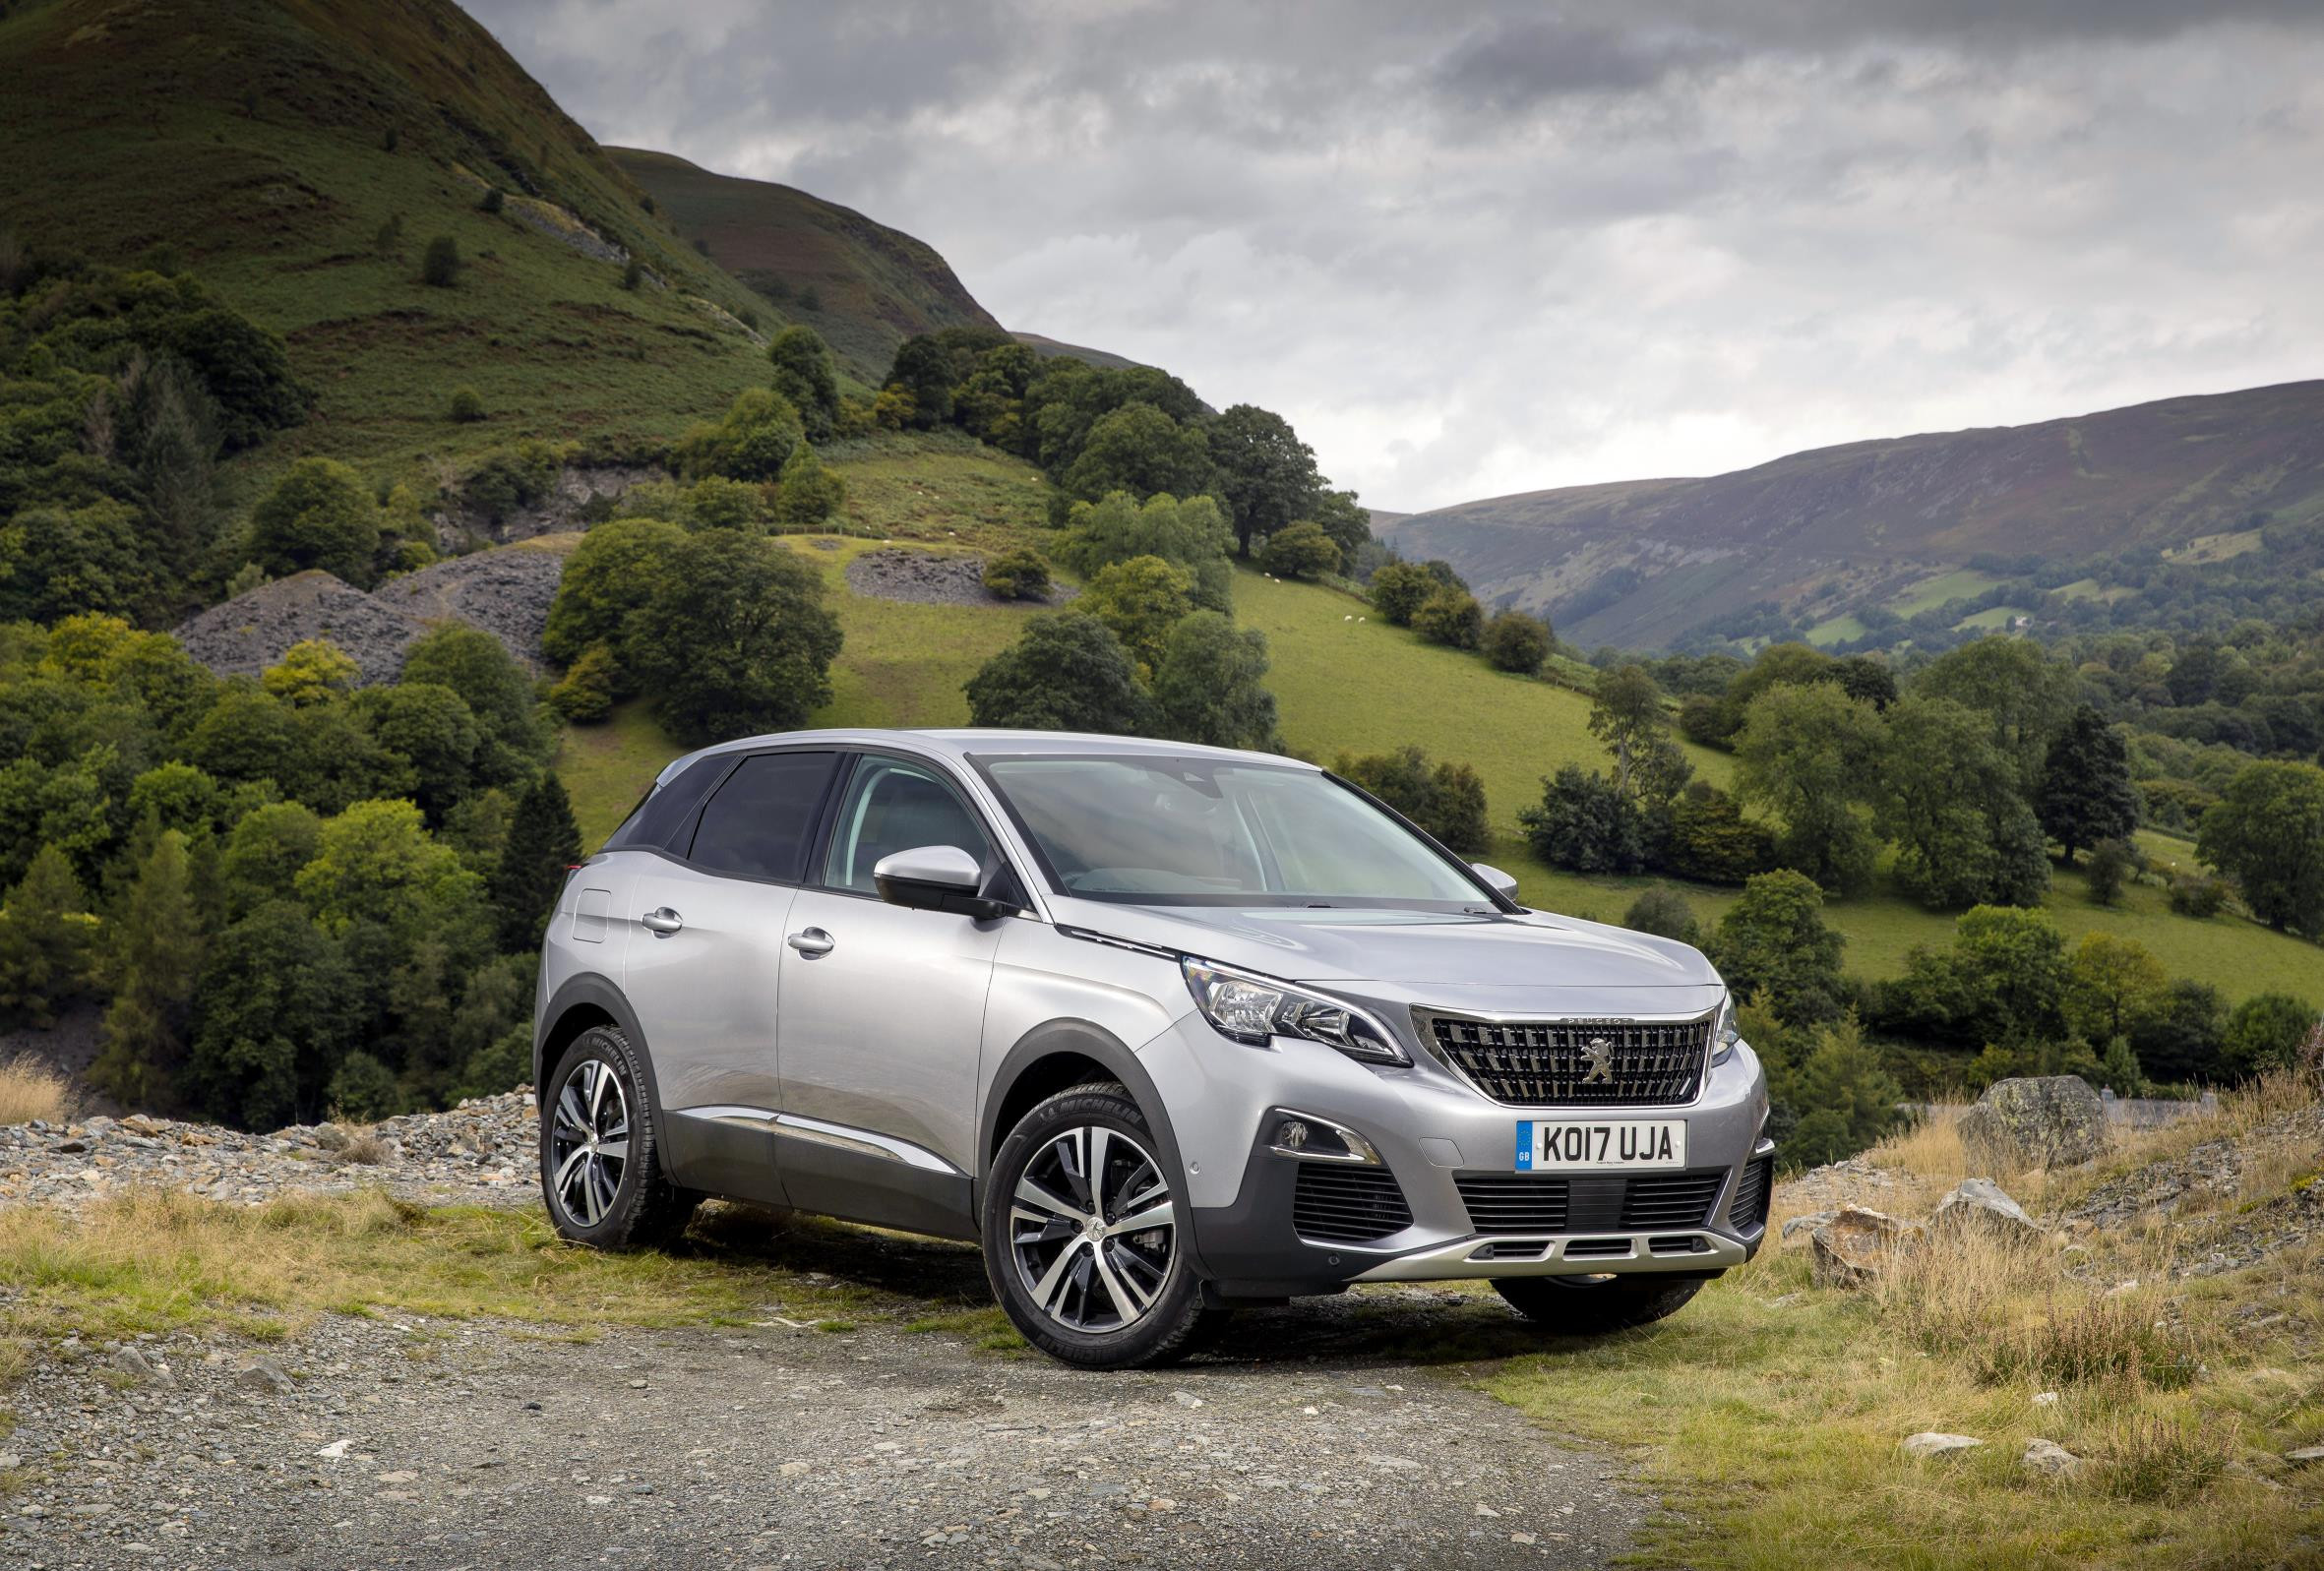 Silver Peugeot 3008